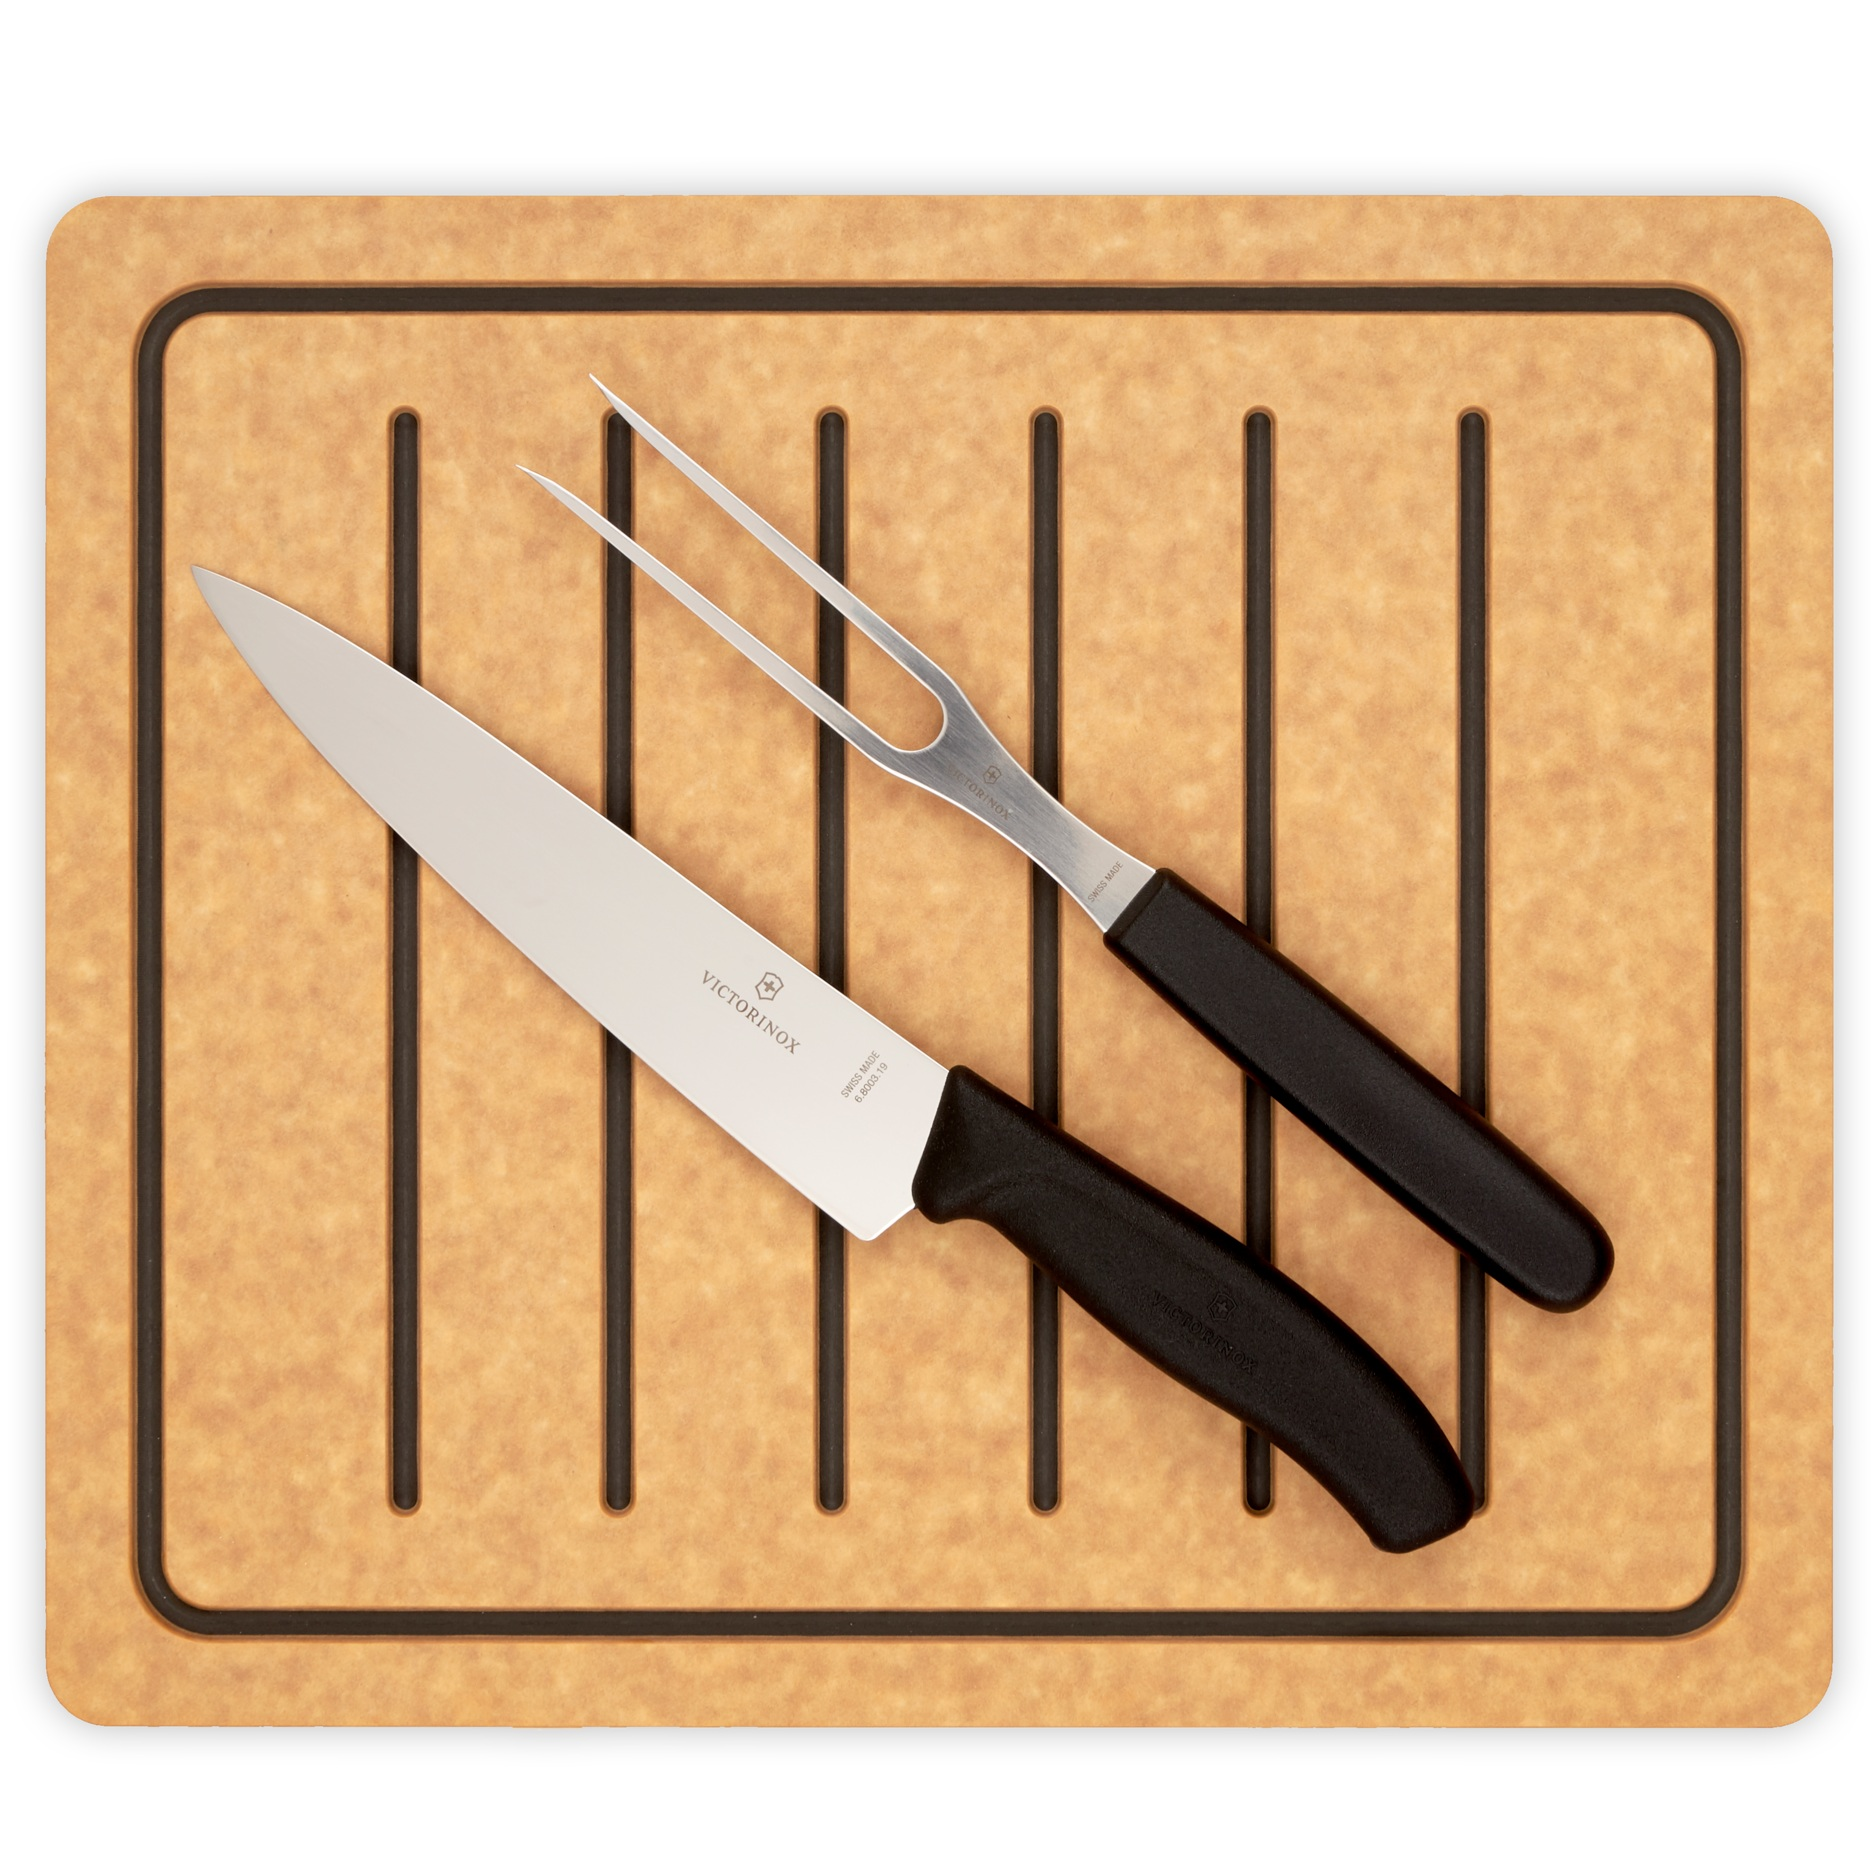 "Carving Combo SetOnly $39.99 - 14"" x 12"" Carving BoardVictorinox Carving Set"